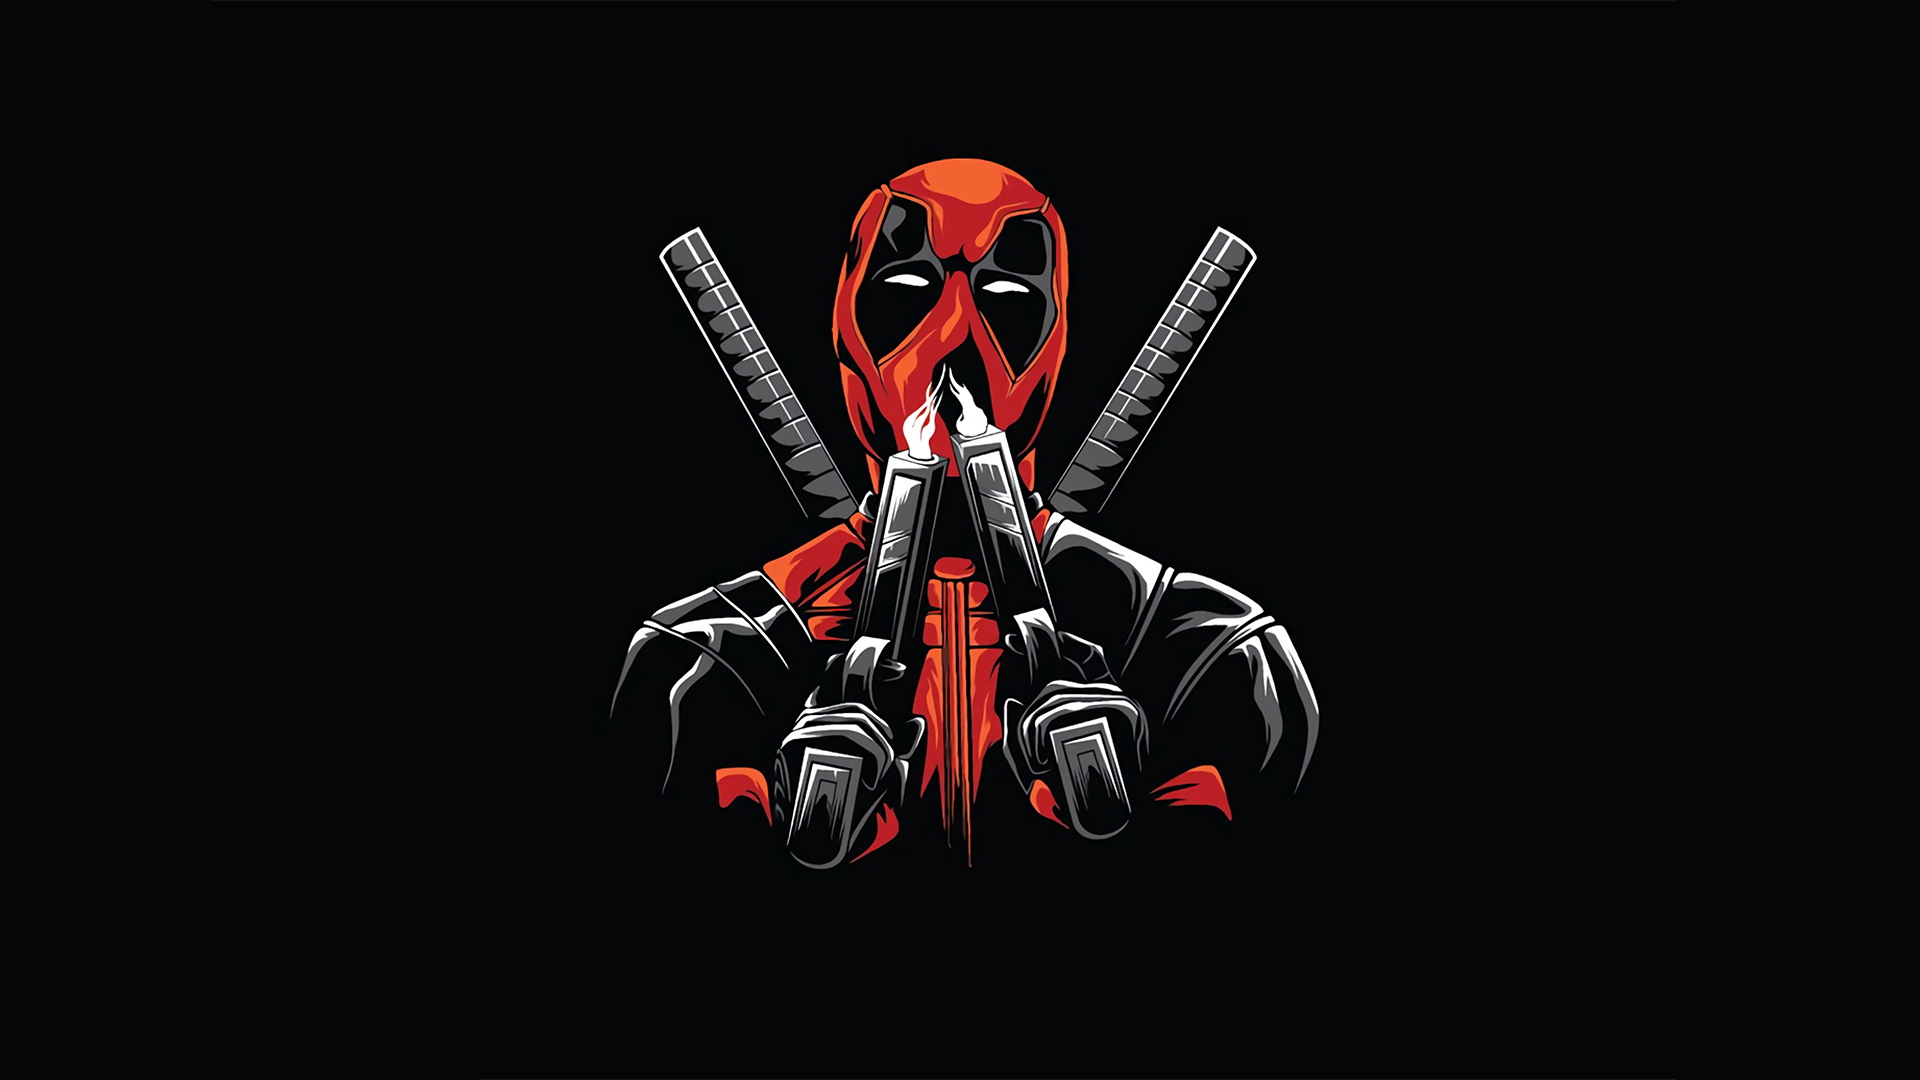 1920x1080 Deadpool Minimal Design Laptop Full Hd 1080p Hd 4k Wallpapers Images Backgrounds Photos And Pictures